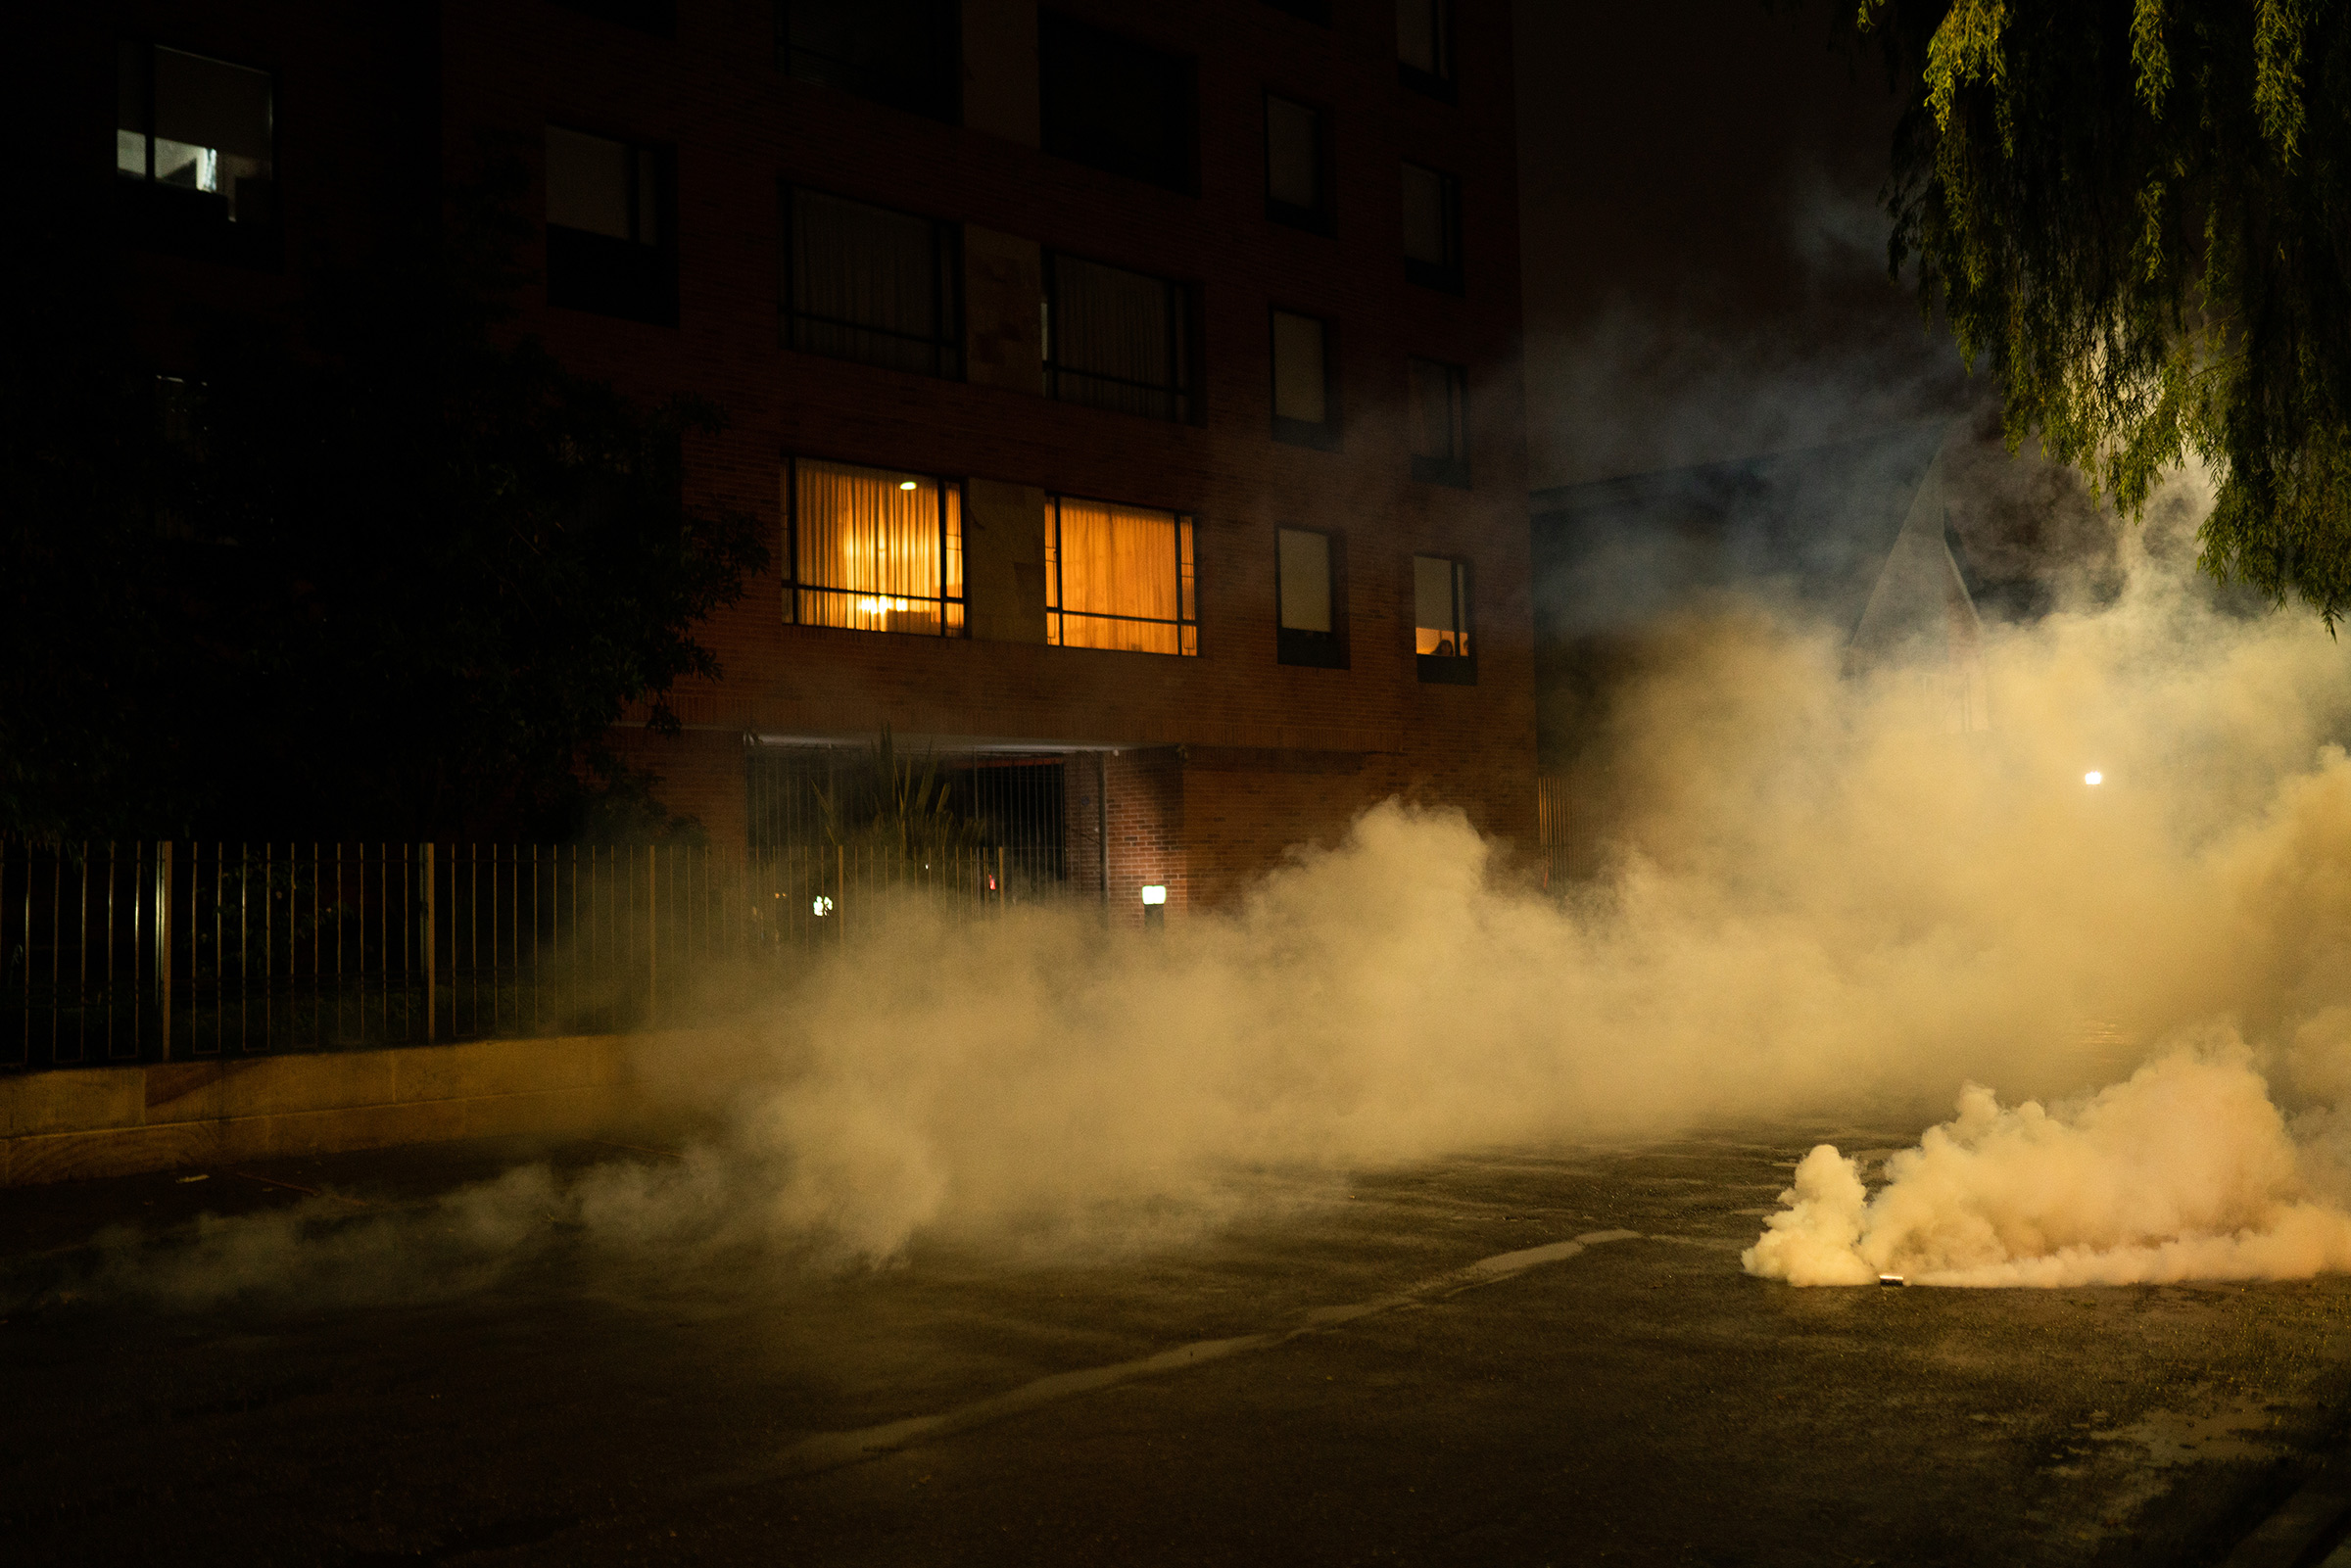 Tear gas on the streets of Bogotá on May 1. From April 28 to May 6, there have been over 100 cases of gunfire used against protesters, according to civil society groups.